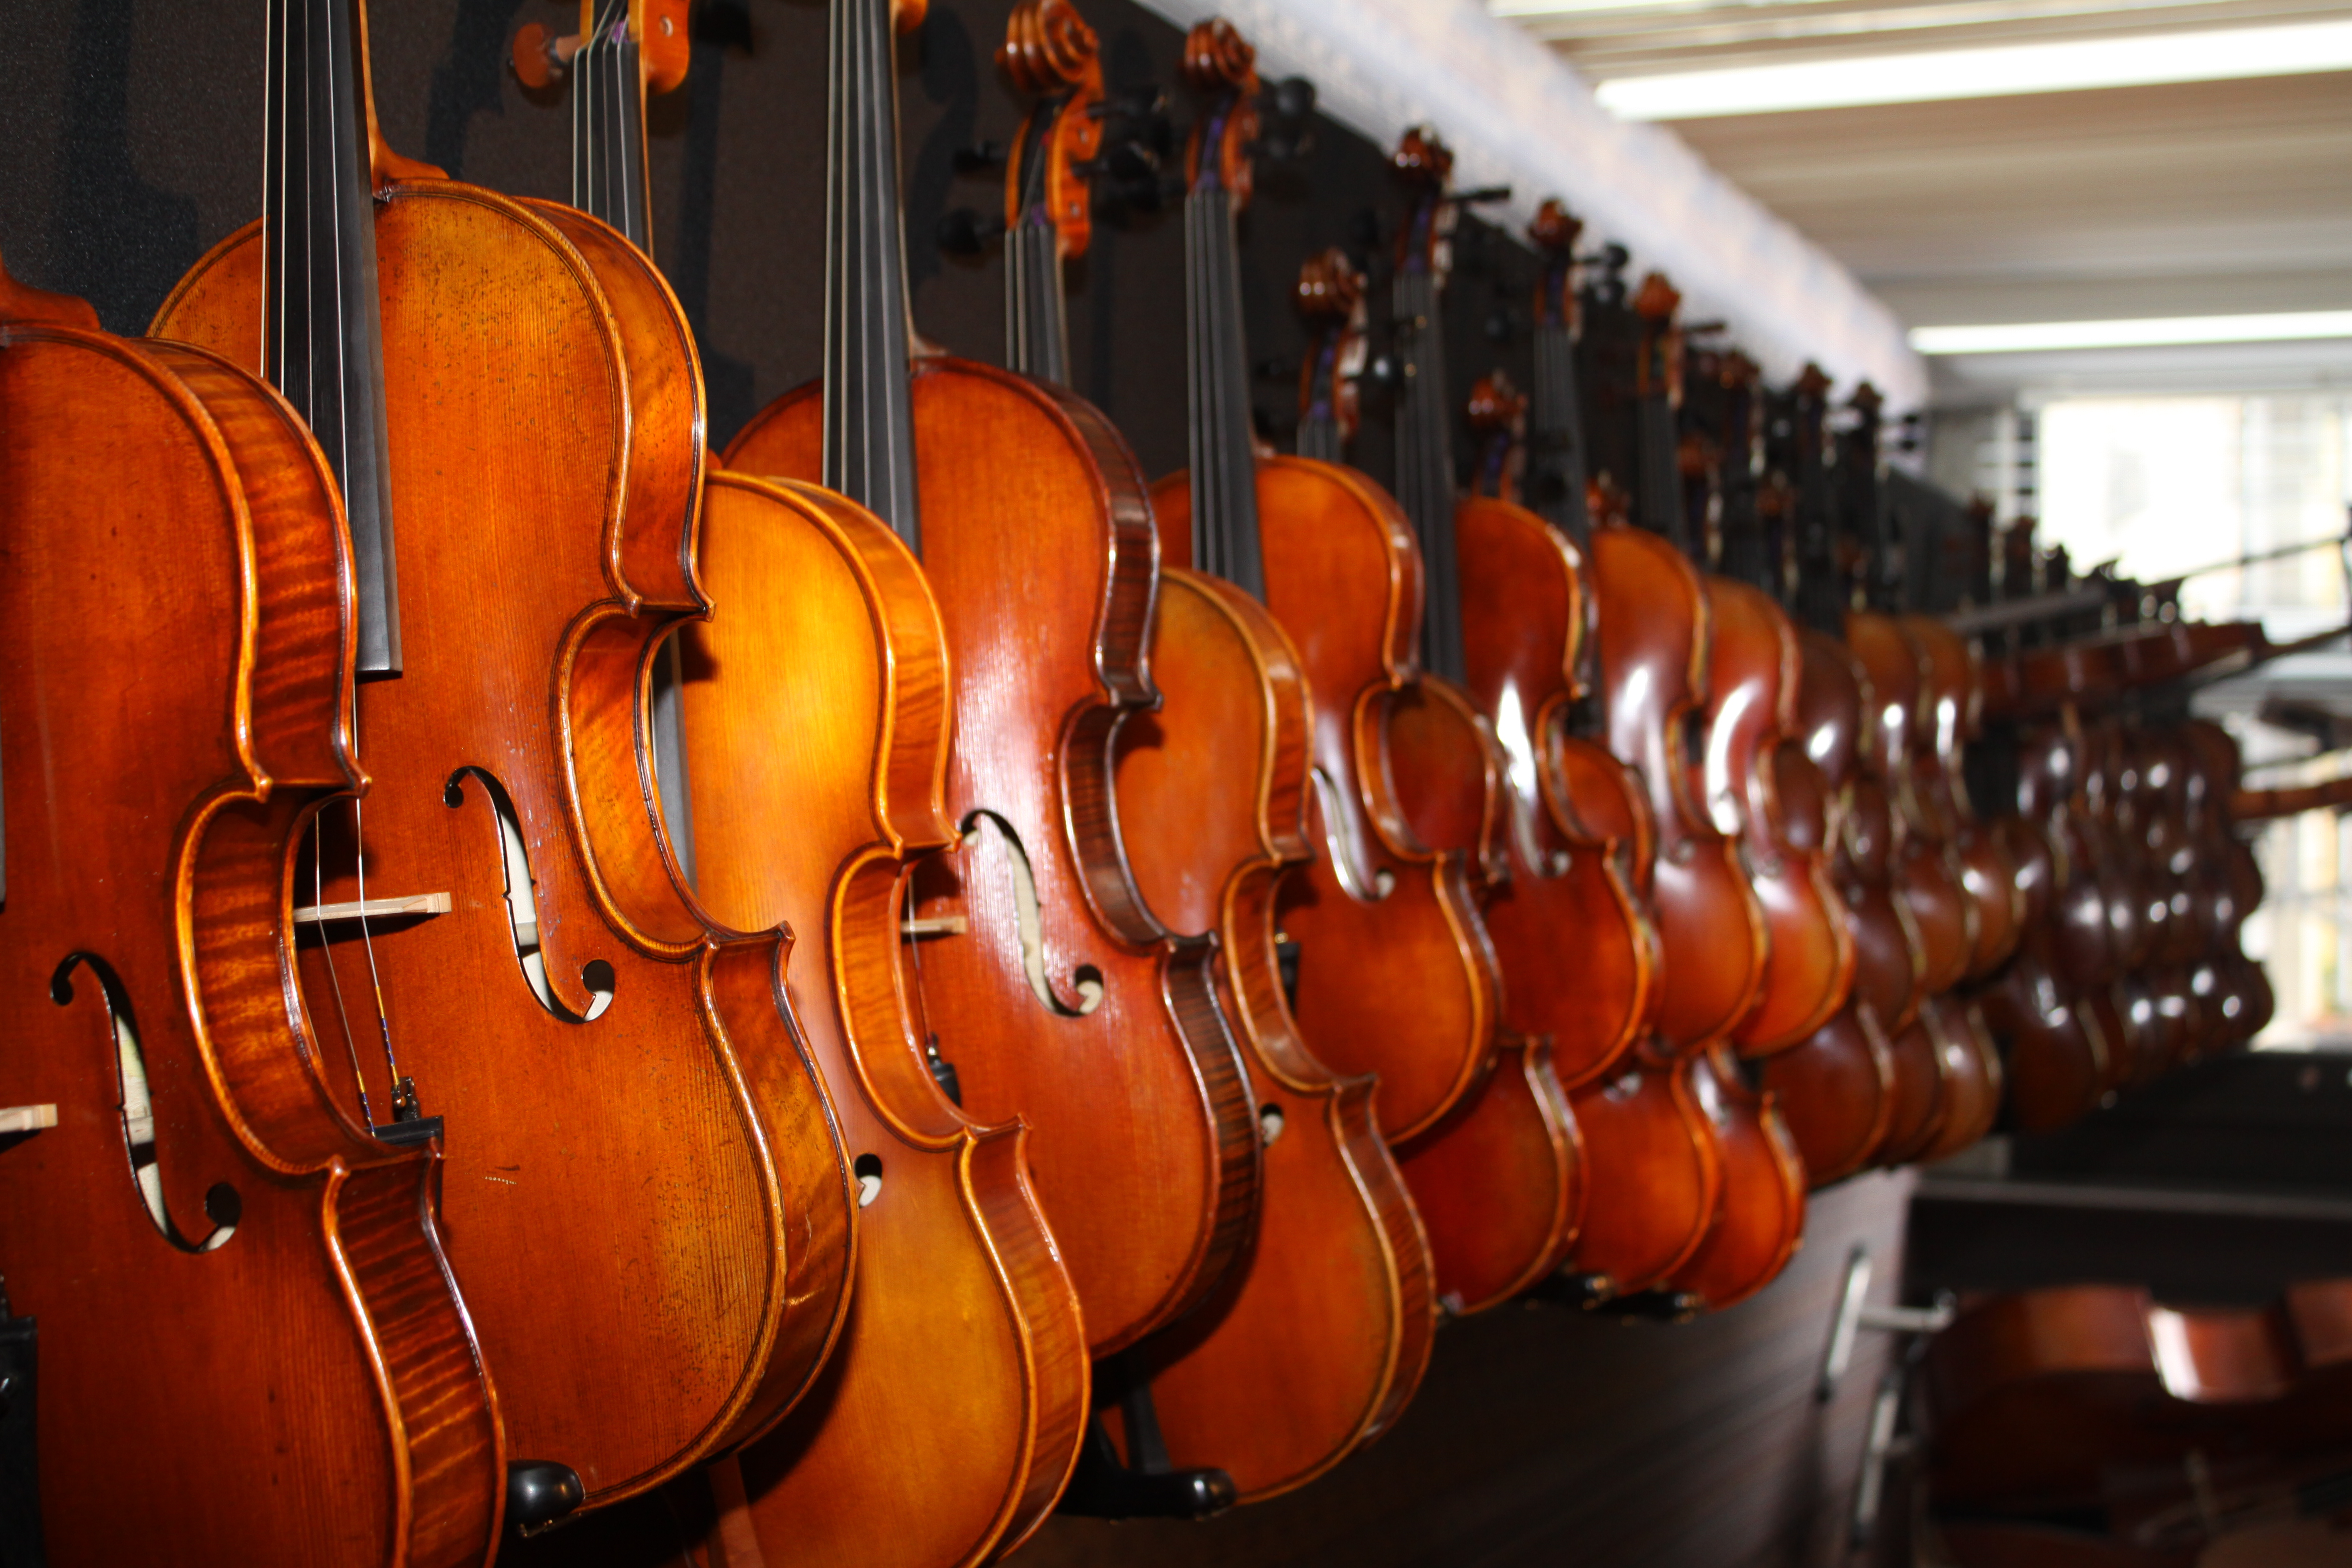 A side view of at least 20-30 violins lined up on a table